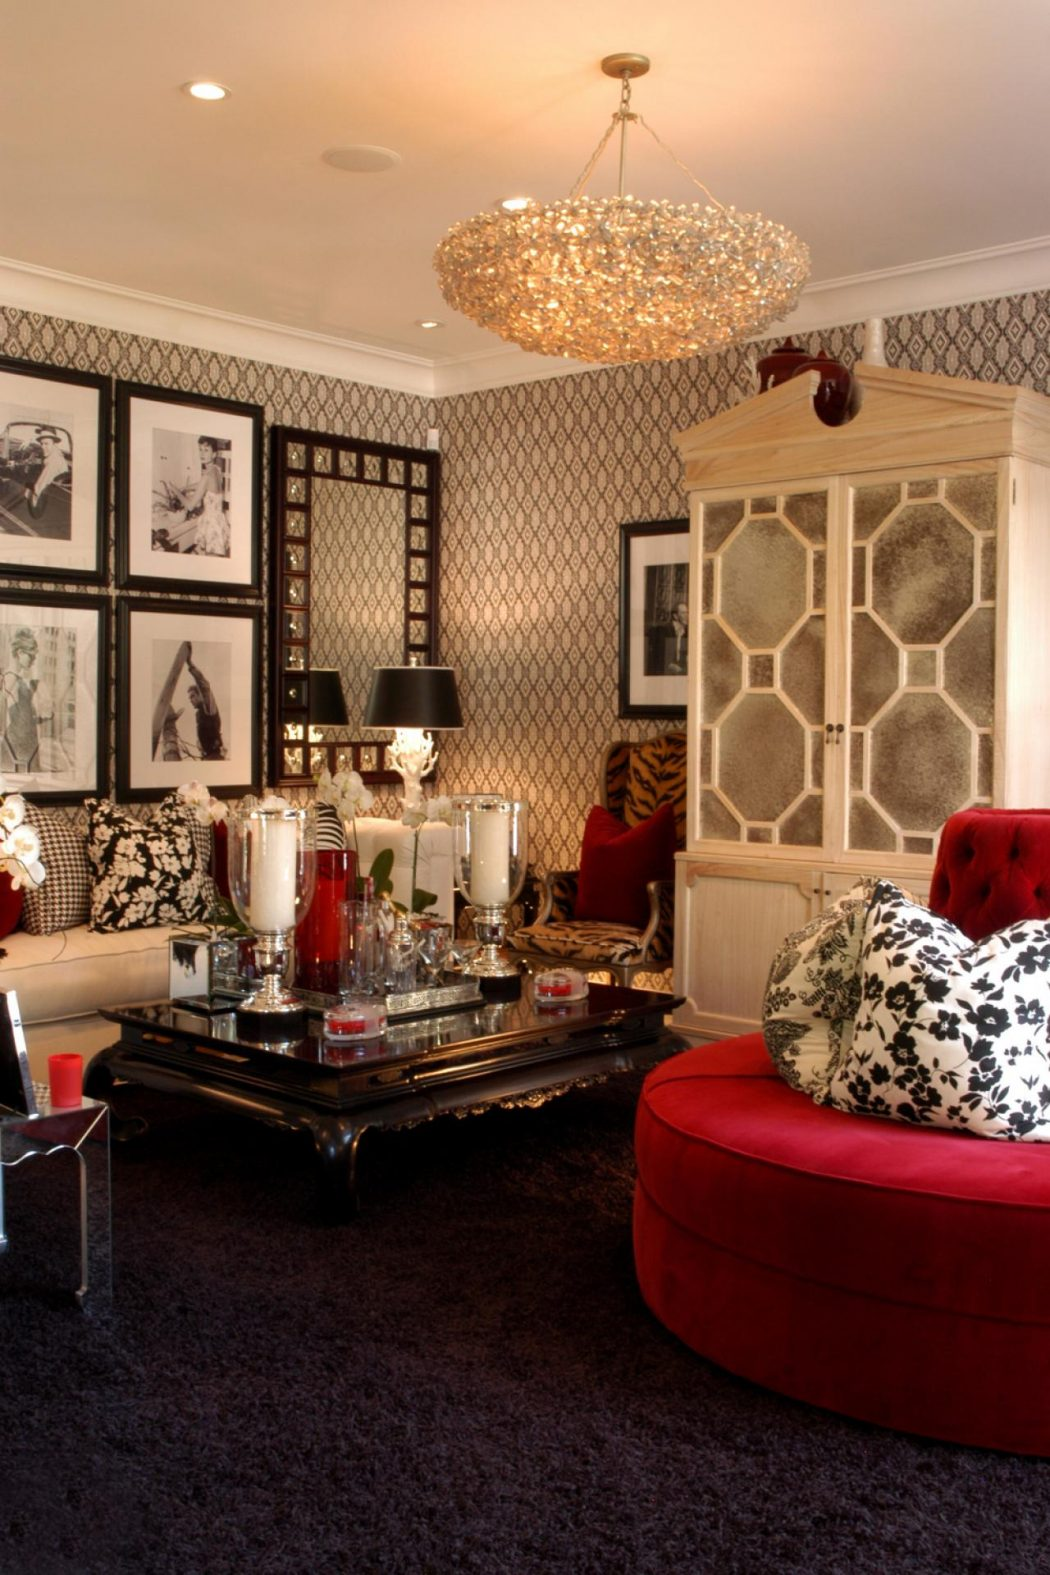 barclay-butera-hollywood.jpg.rend_.hgtvcom.1280.1920 10 Ways to Add Glam to Your Hollywood Home